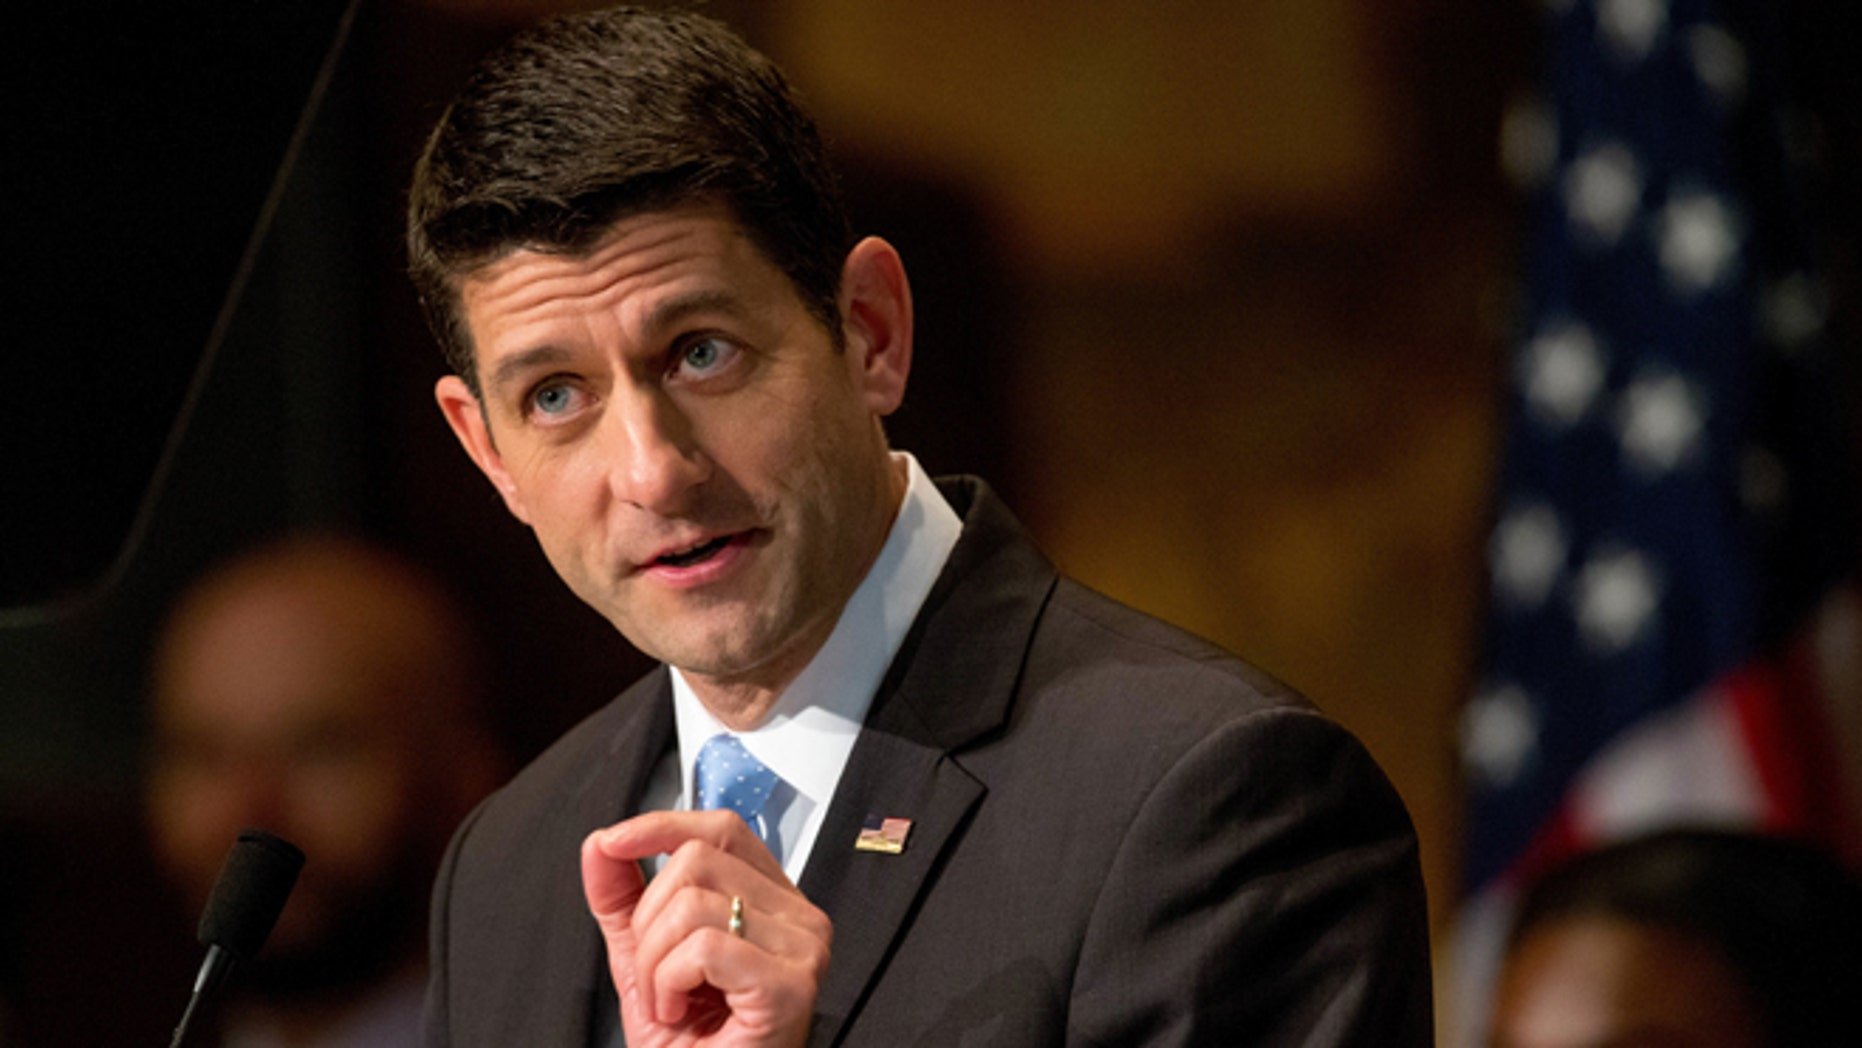 FILE - In this April 27, 2016 file photo,House Speaker Paul Ryan of Wis. speaks in Washington. Paul Ryan is refusing to support Donald Trump as the Republican nominee for president. (AP Photo/Andrew Harnik, File)